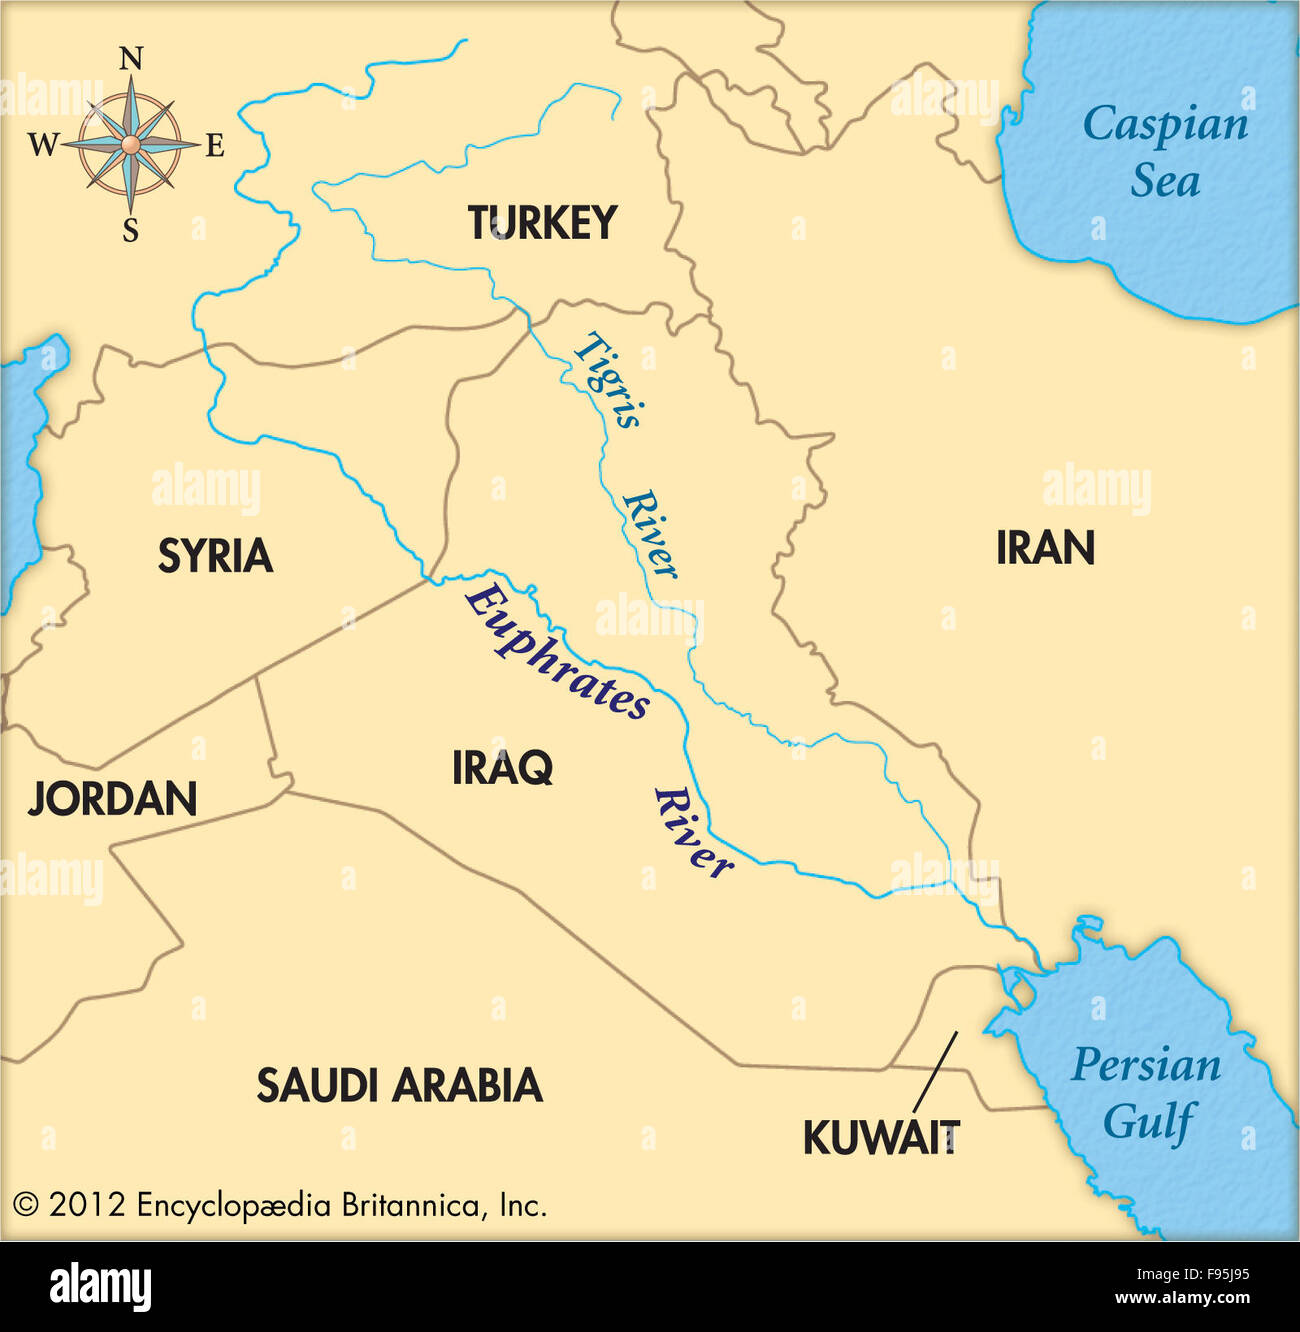 The Euphrates River Stock Photo: 91707873 - Alamy